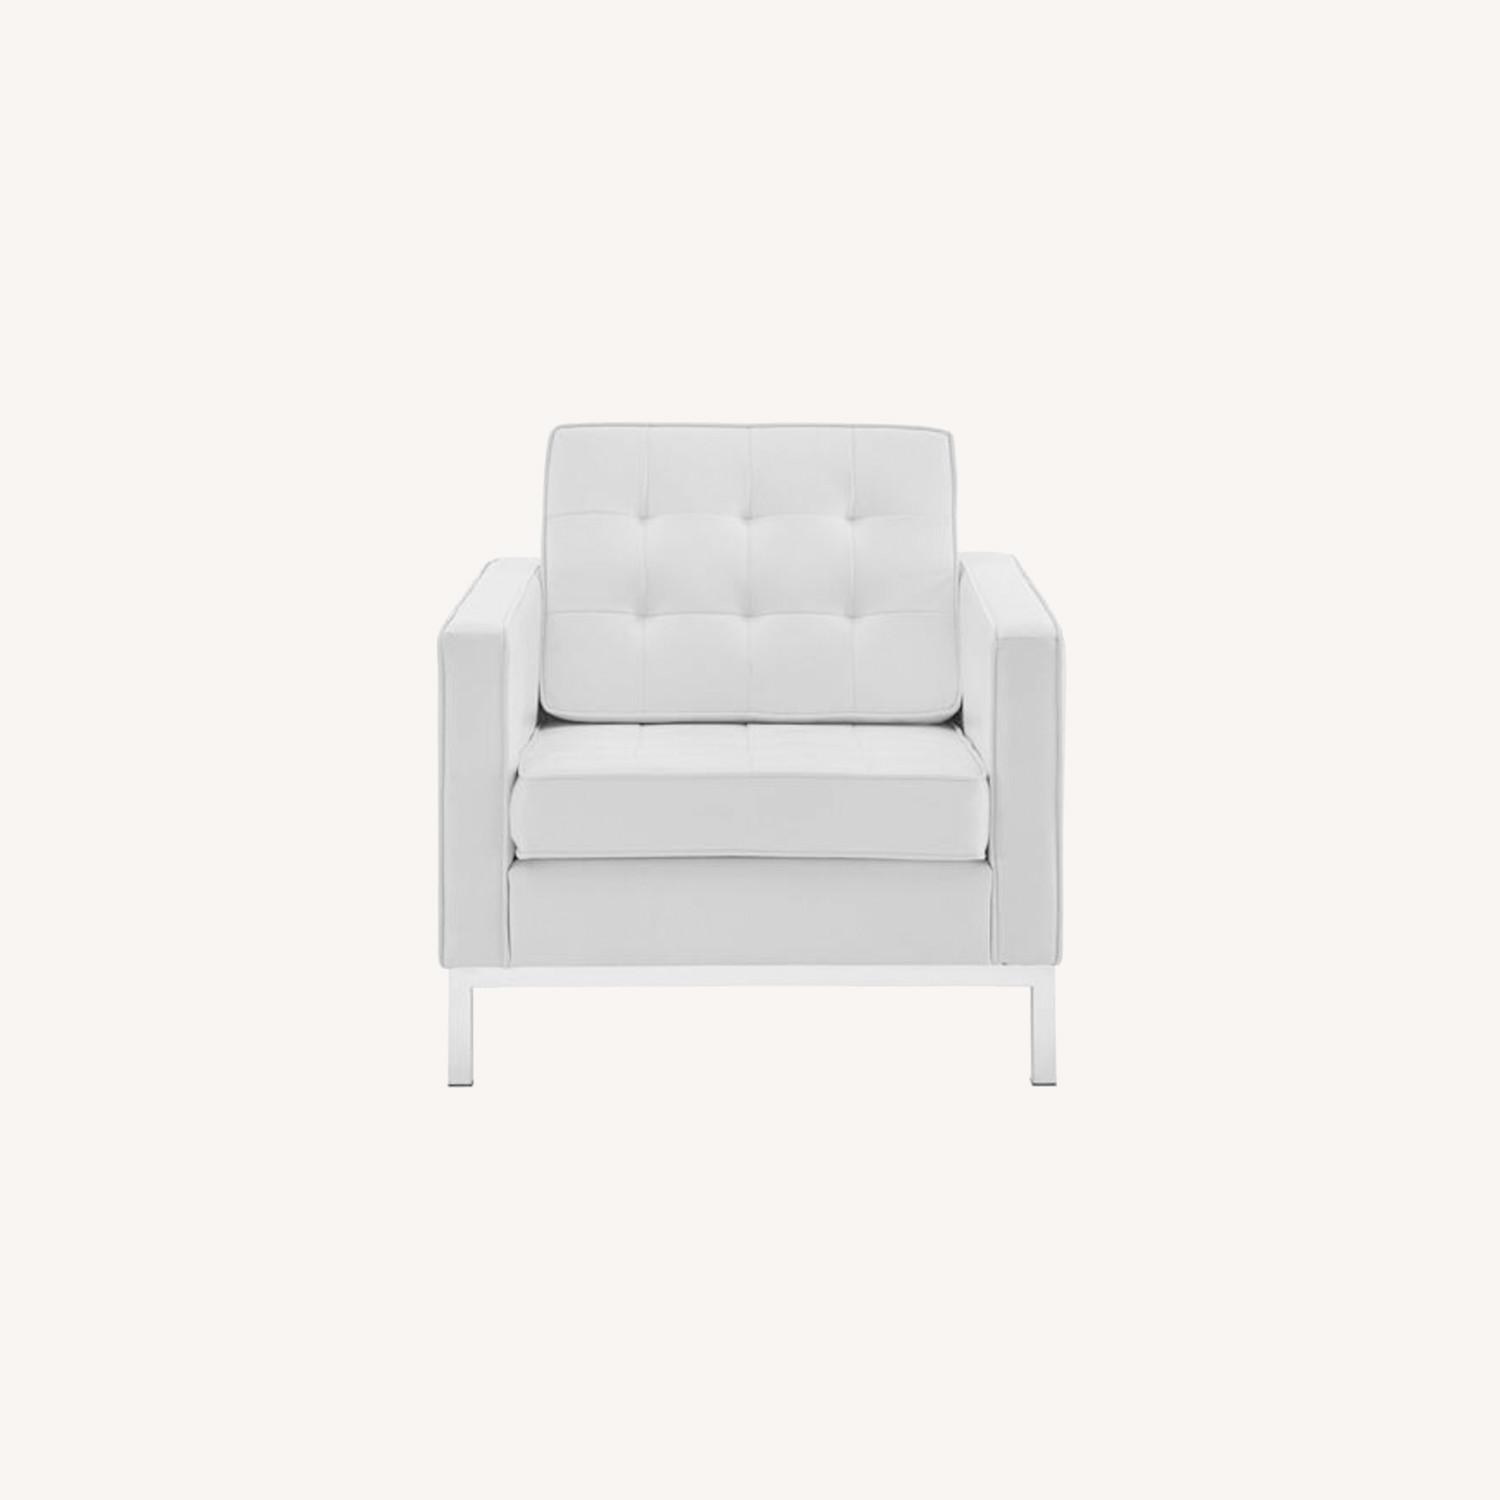 Armchair In White Faux Leather W/ Silver Legs - image-6